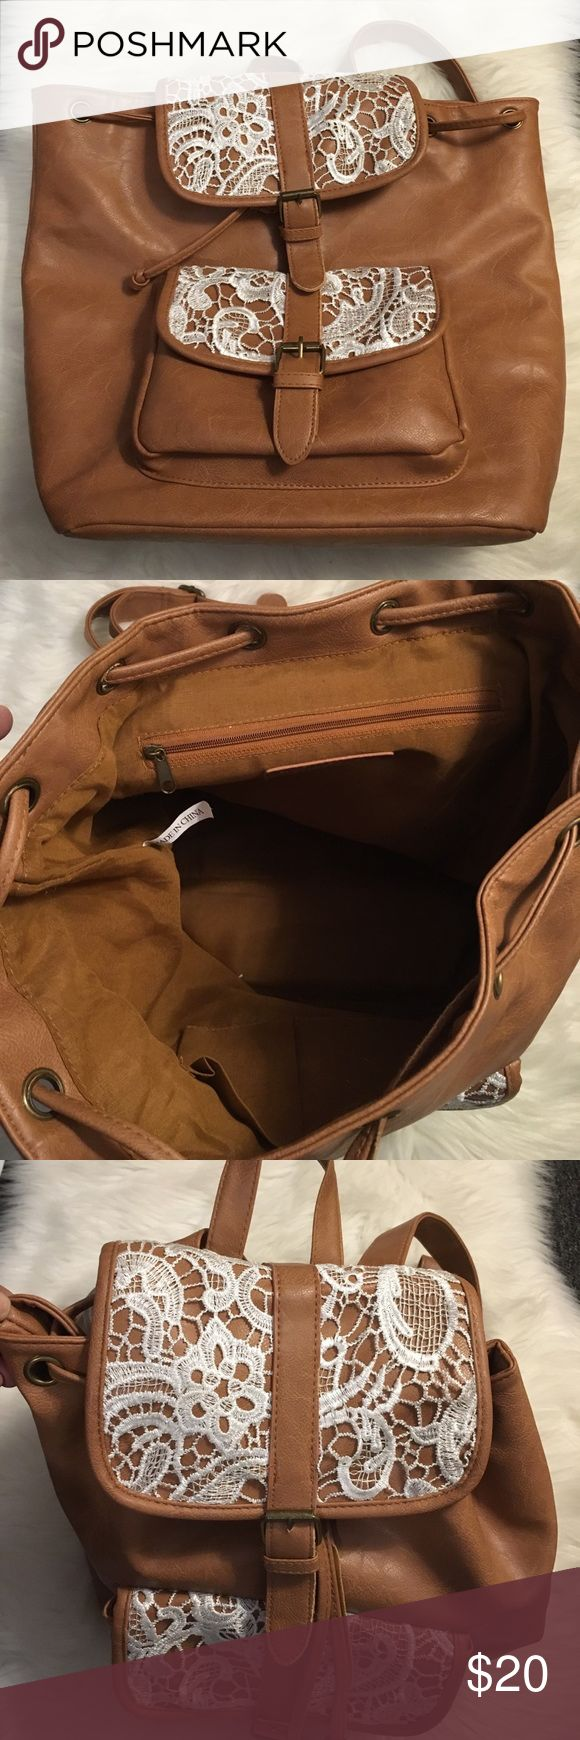 NWOT Rampage Camel Backpack NWOT Faux Leather Rampage Bags Backpacks